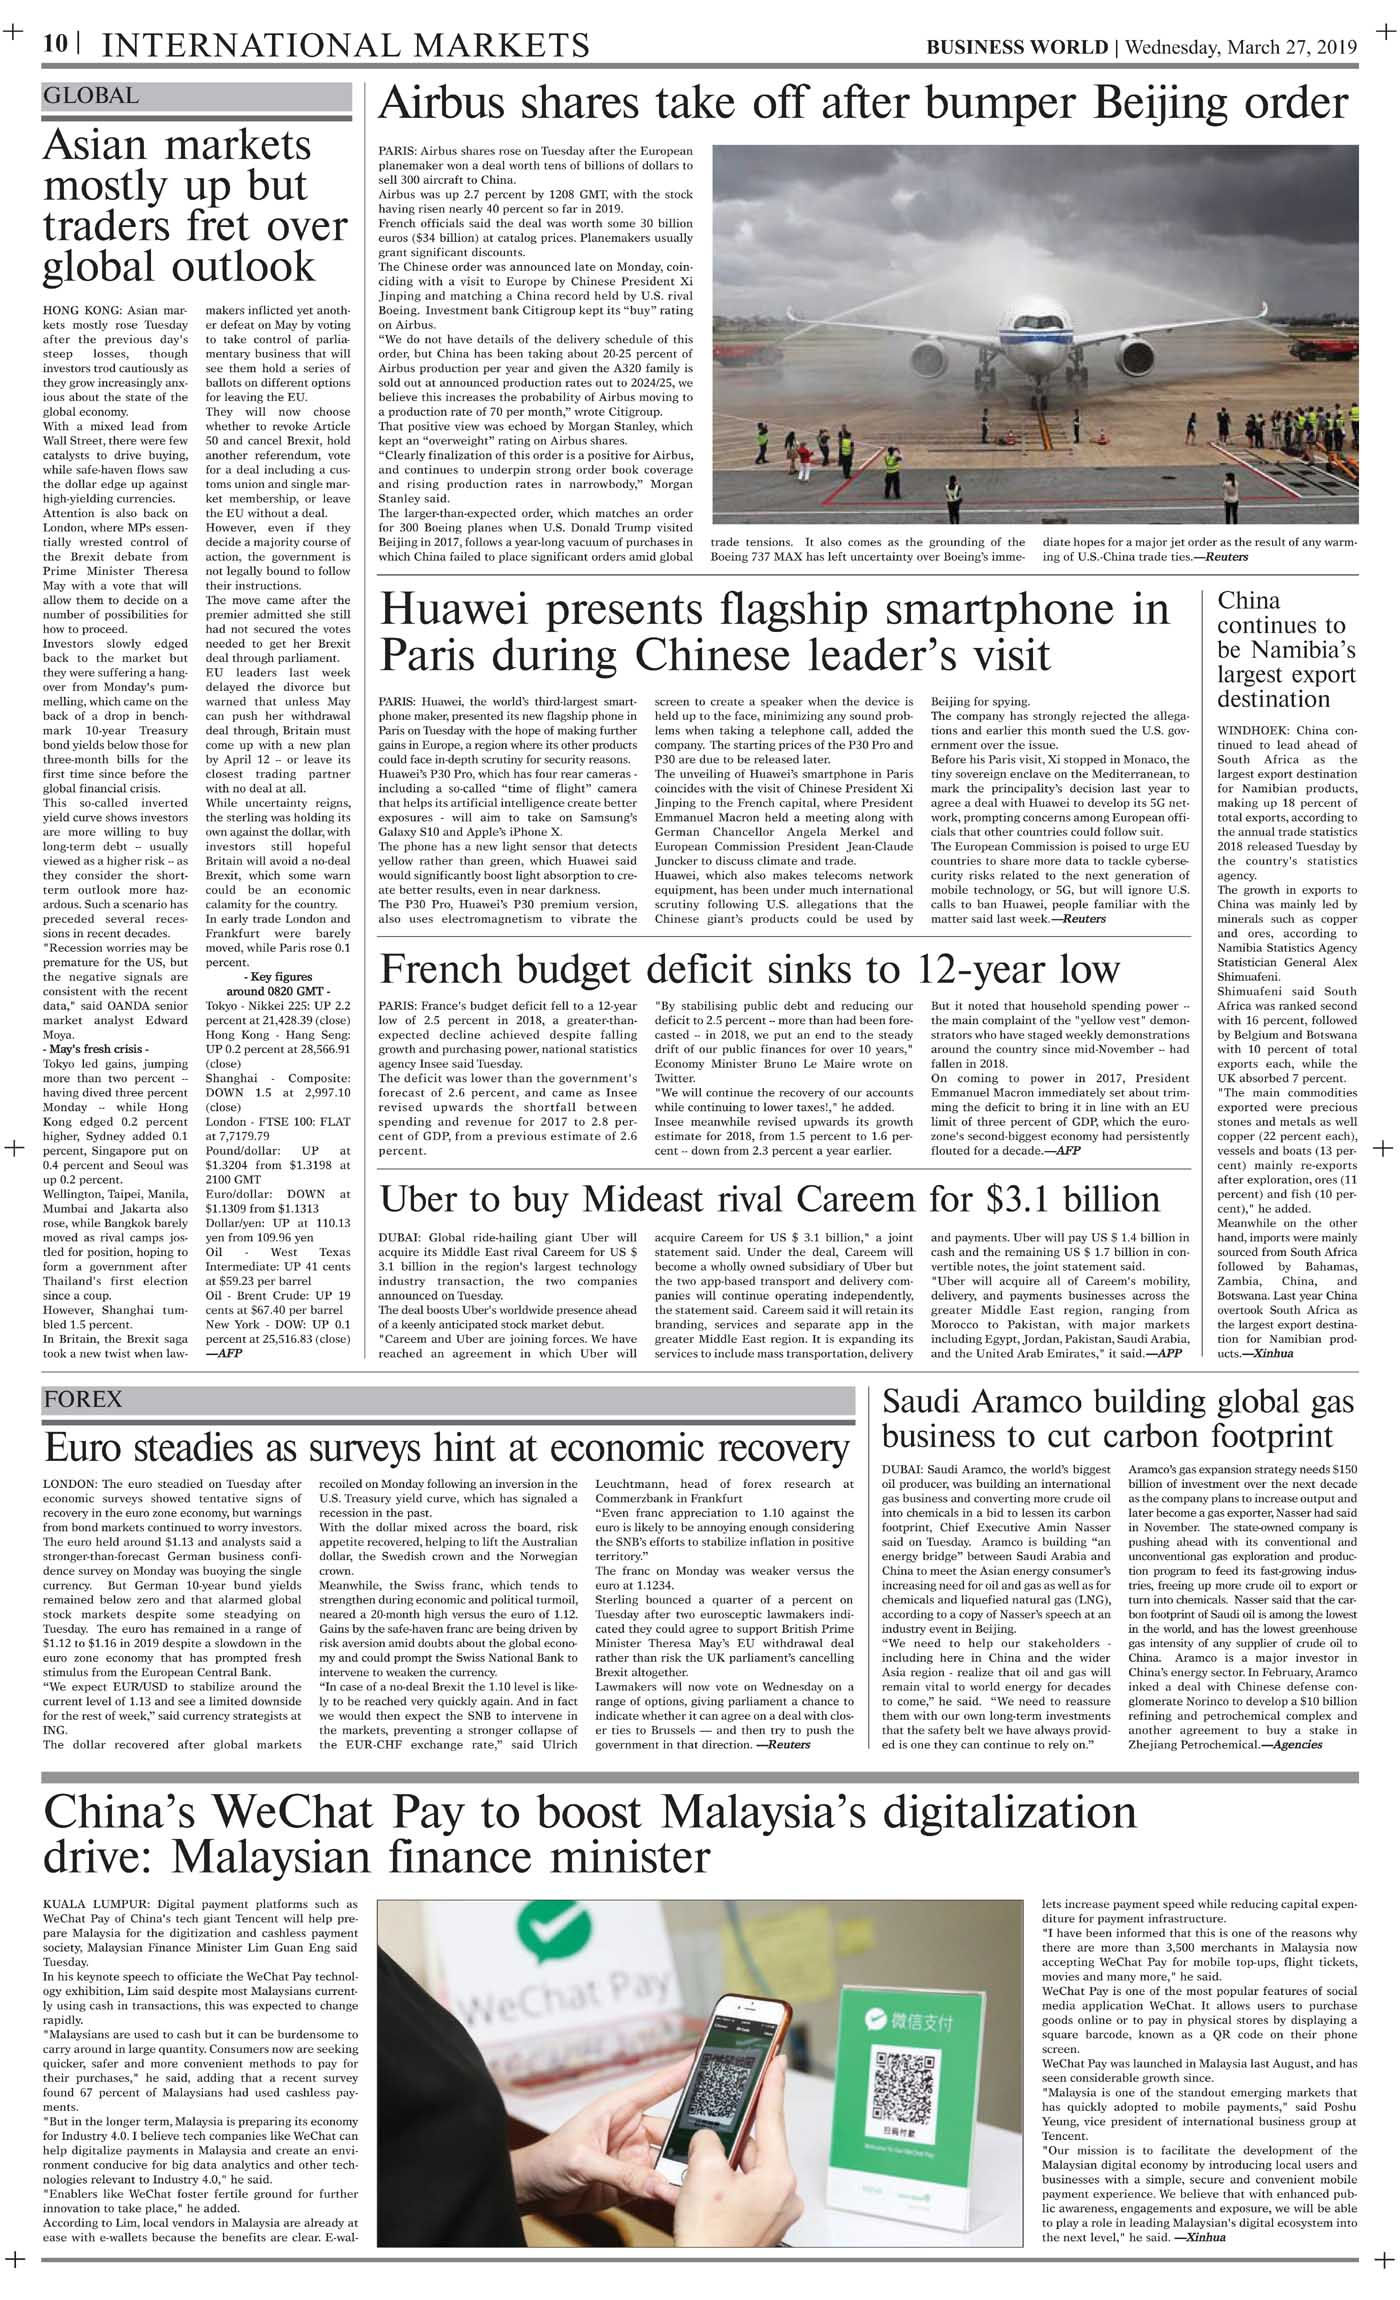 Daily Business World E-Paper 27th March 2019 - Daily